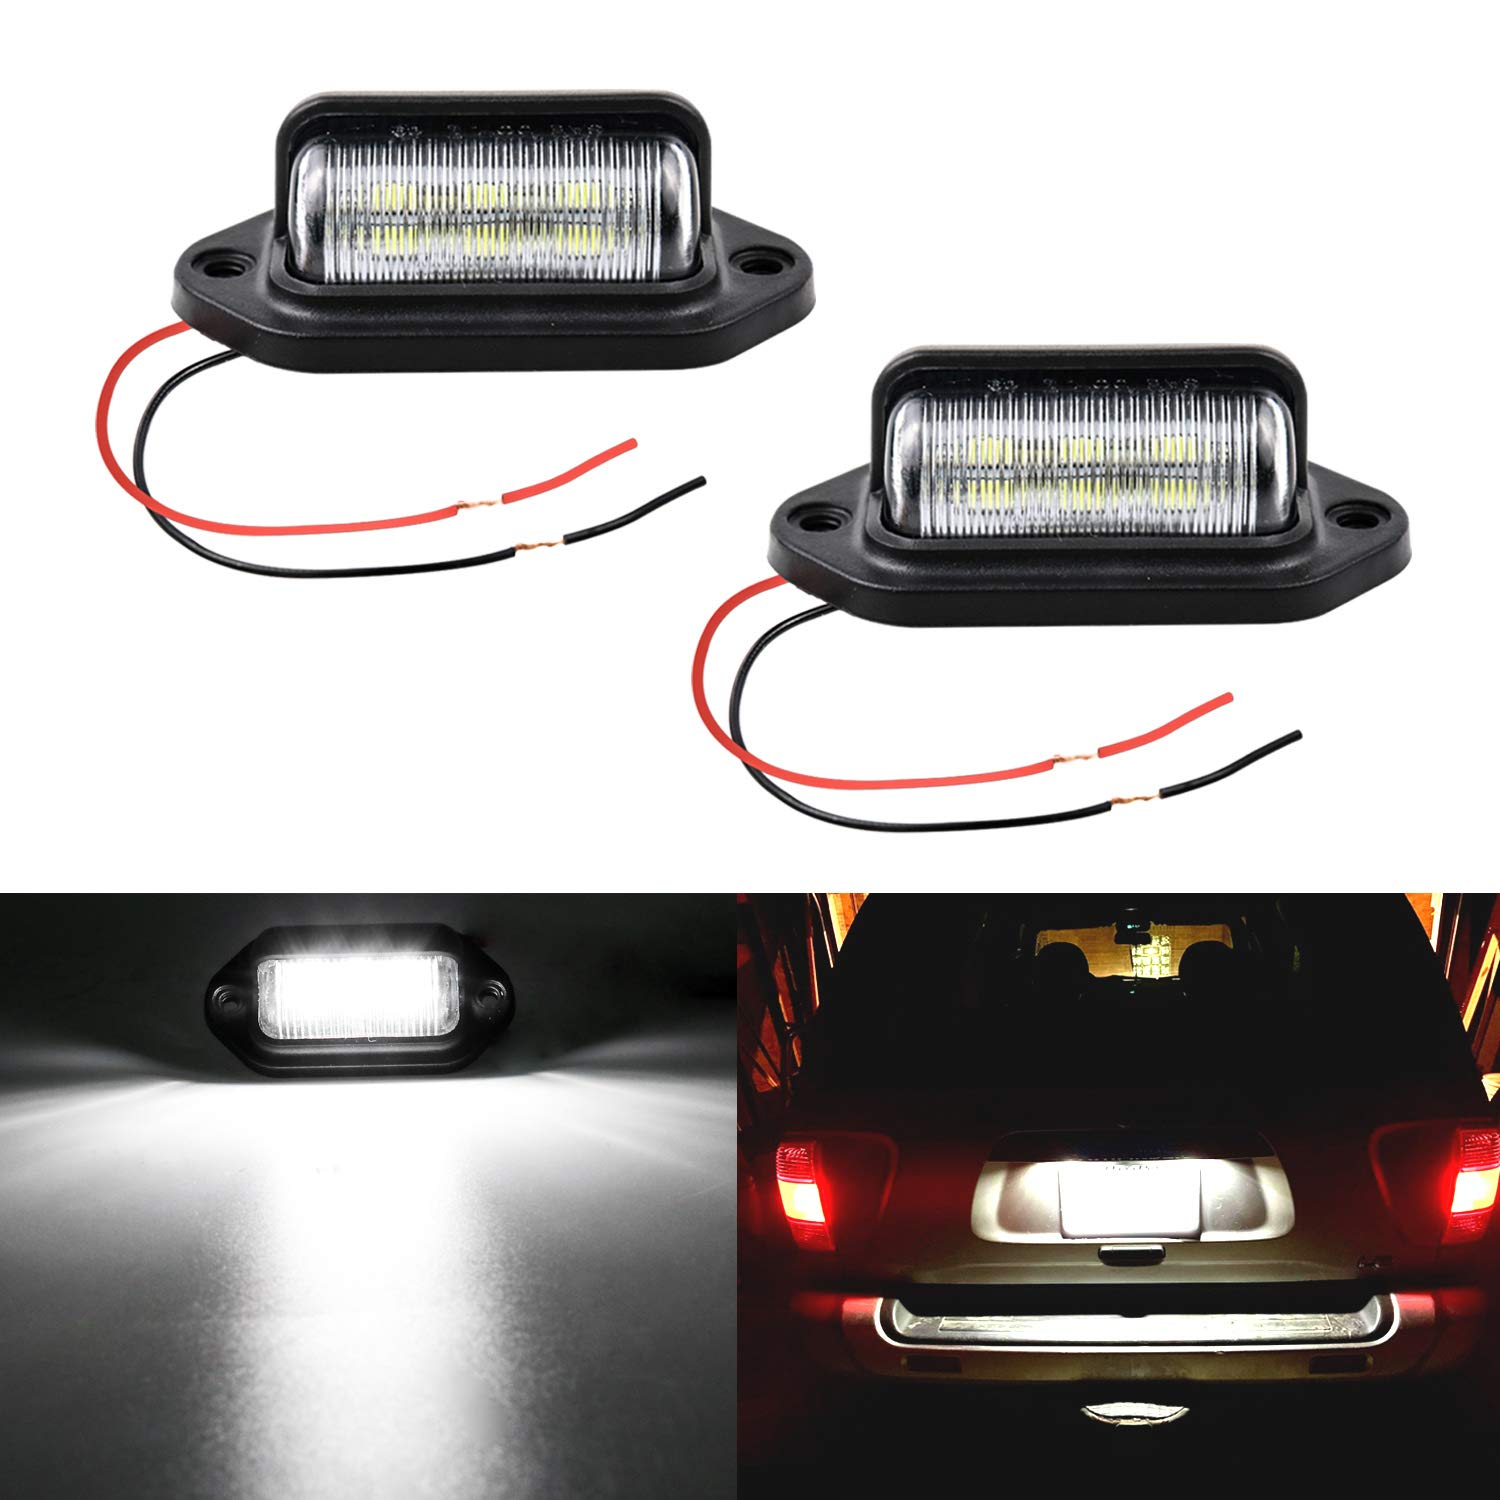 LivTee Waterproof 12V LED License Plate Lamp Light for Truck SUV Trailer Van, Step Courtesy Lights, Dome/Cargo Lights or Under Hood Light, Xenon White(2-Pieces)